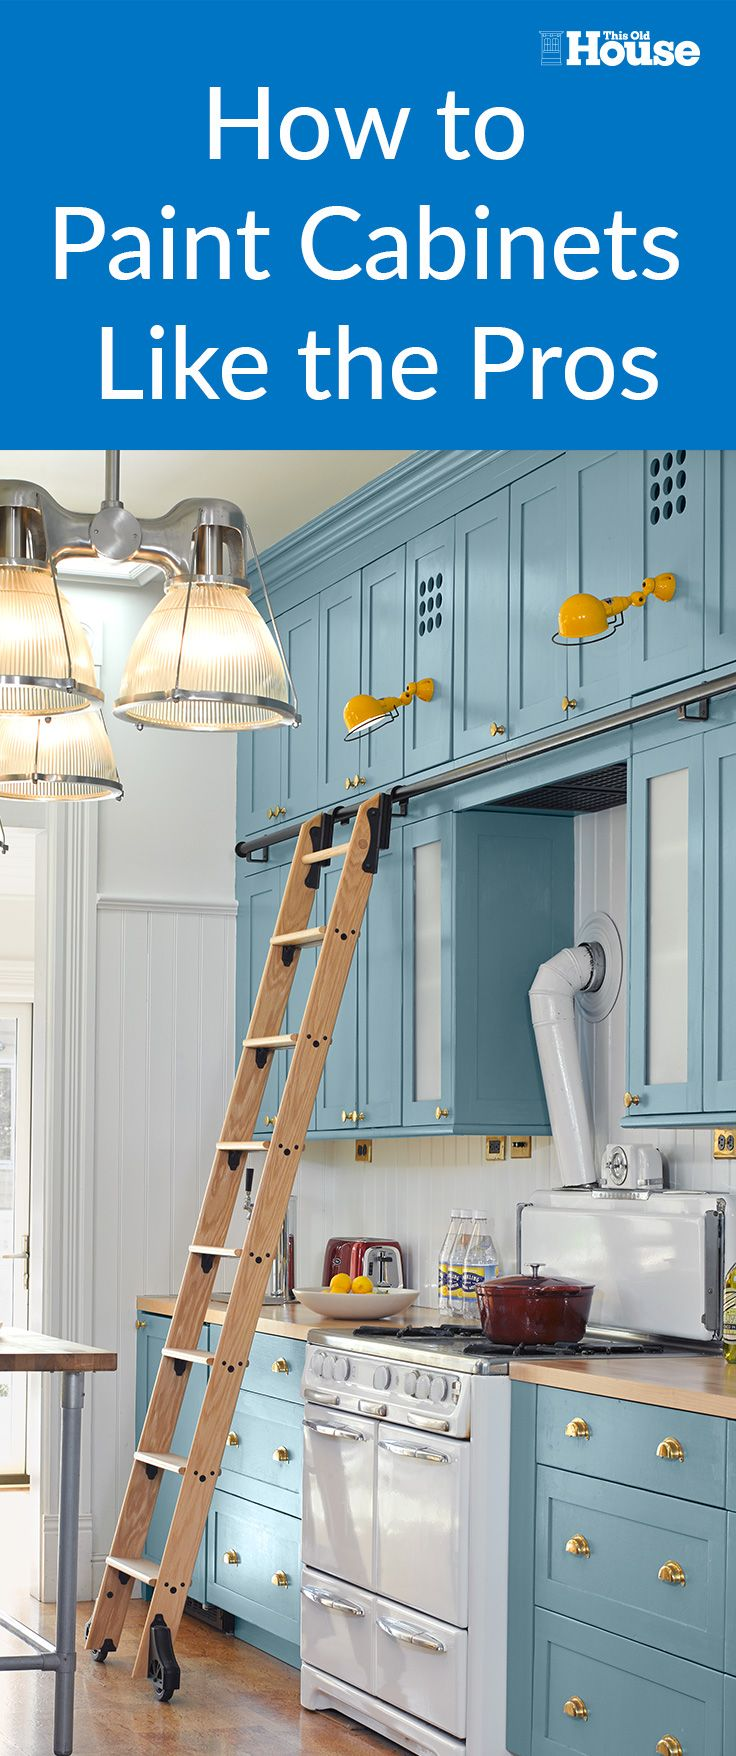 If your kitchen cabinets are solid but dated and dark, a fresh coat of paint can go a long way toward transforming the space without draining your bank account. You can hire a pro to spray-paint them for a thousand dollars or more, but there's a less costly, and less messy, alternative to consider: Use a brush and paint the cabinets yourself.